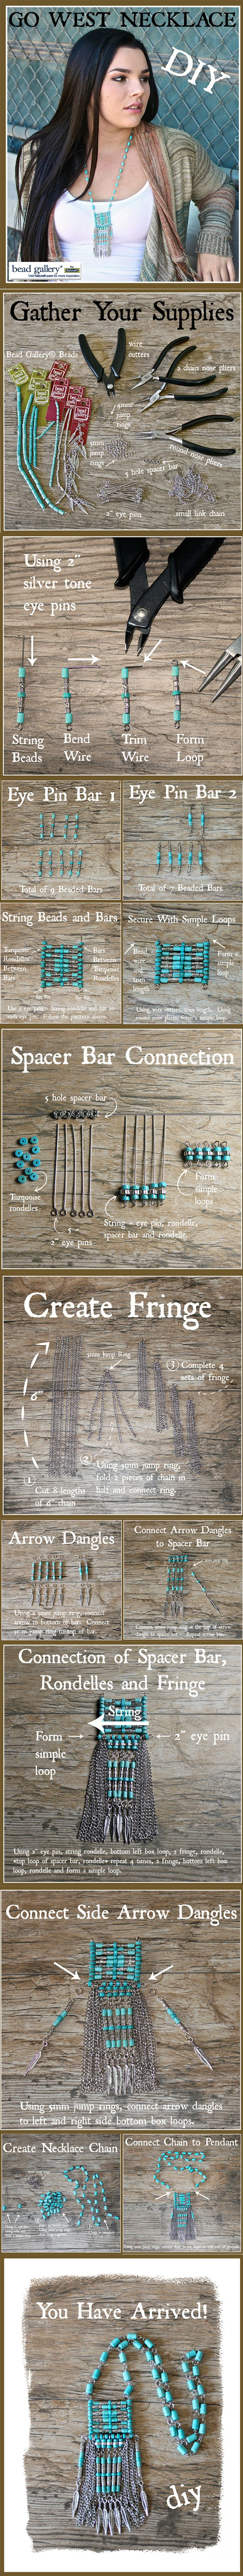 Make your own Go West Necklace to coordinate with your favorite sweater and jeans fall outfit!